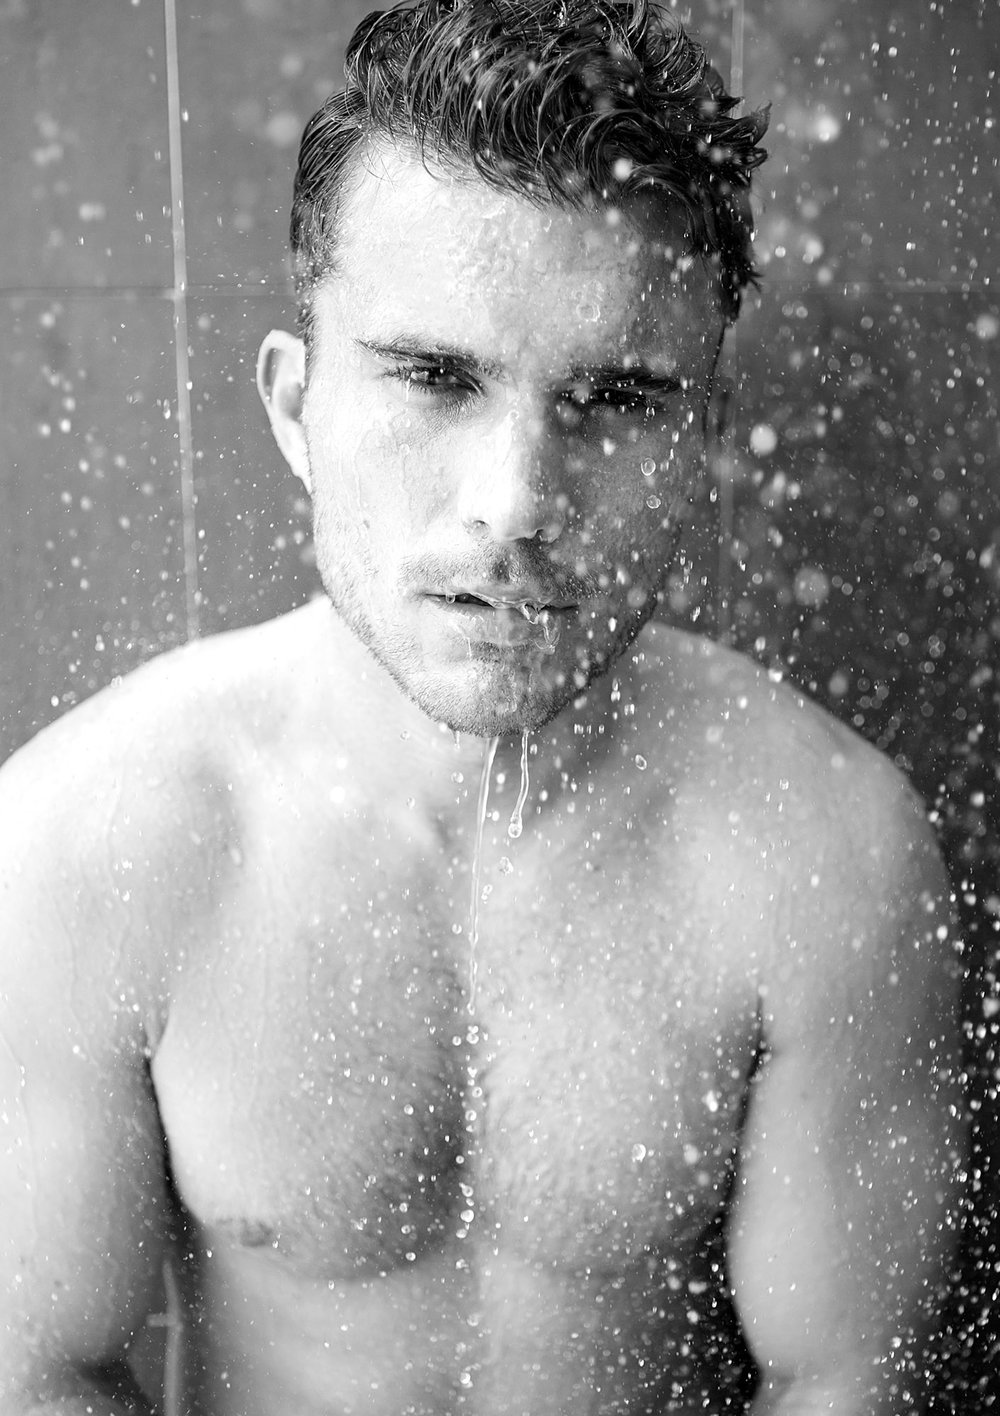 black-white-shower-male-model-fashion-1.jpg